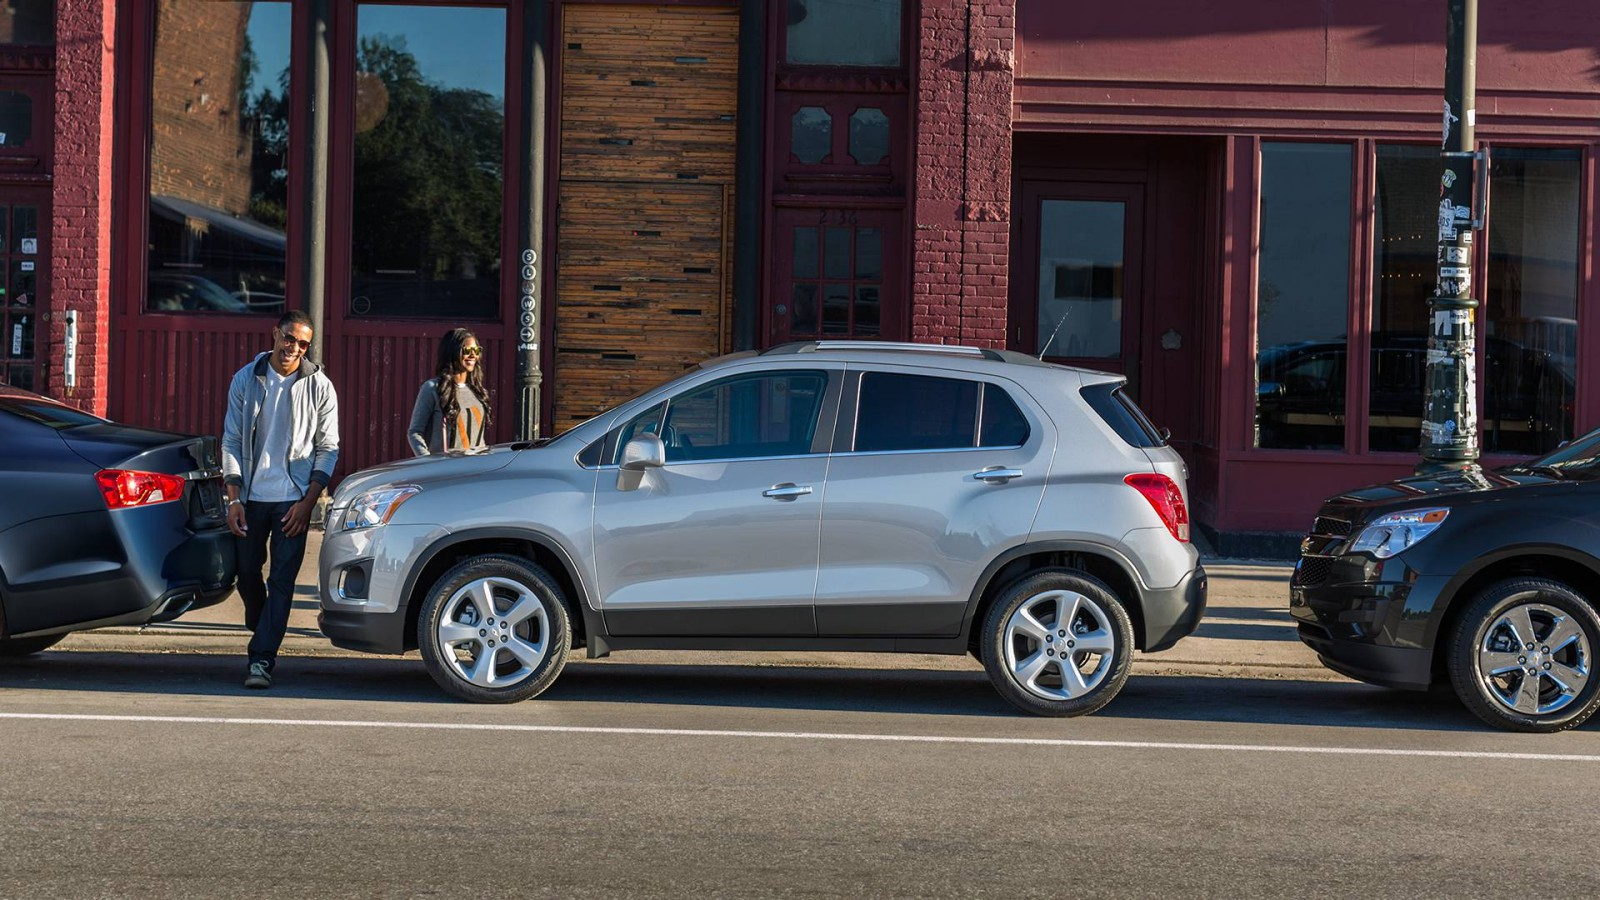 New Chevrolet Trax Exterior main image